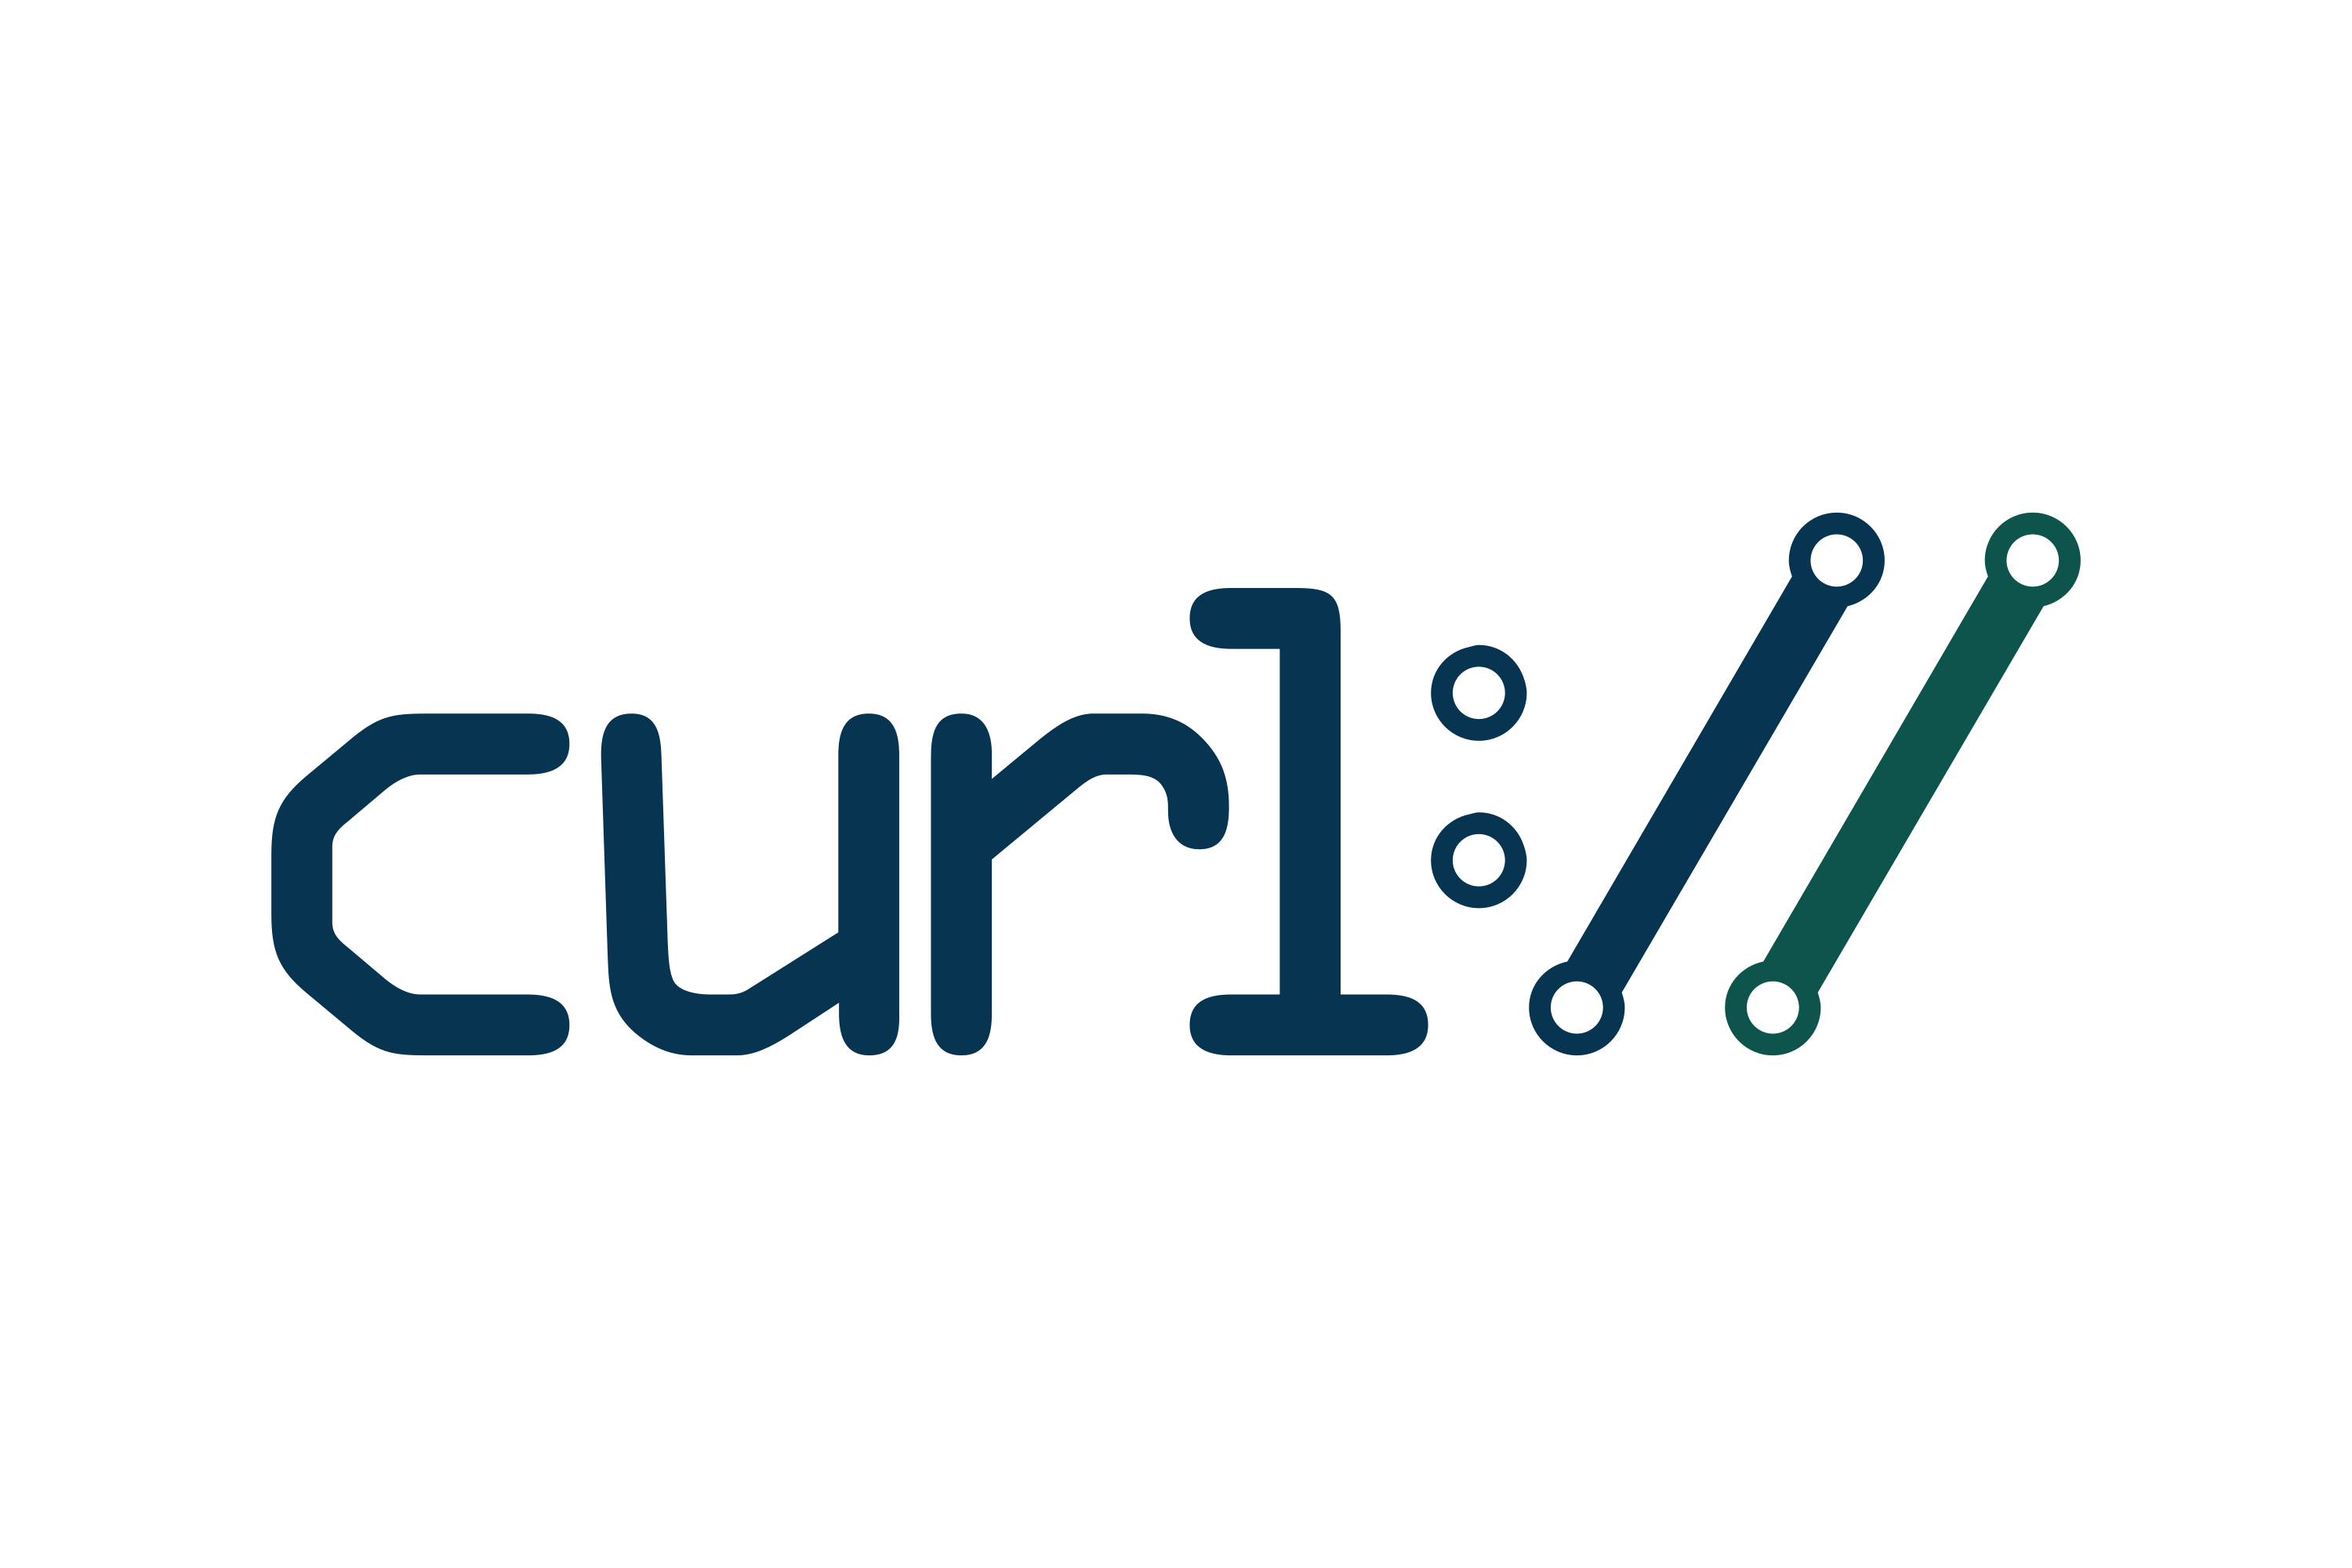 using-curl-ssh-wget-to-test-tcp-port-opened-or-closed-for-web-mysql-smtp-or-any-other-linstener-in-pci-linux-logo